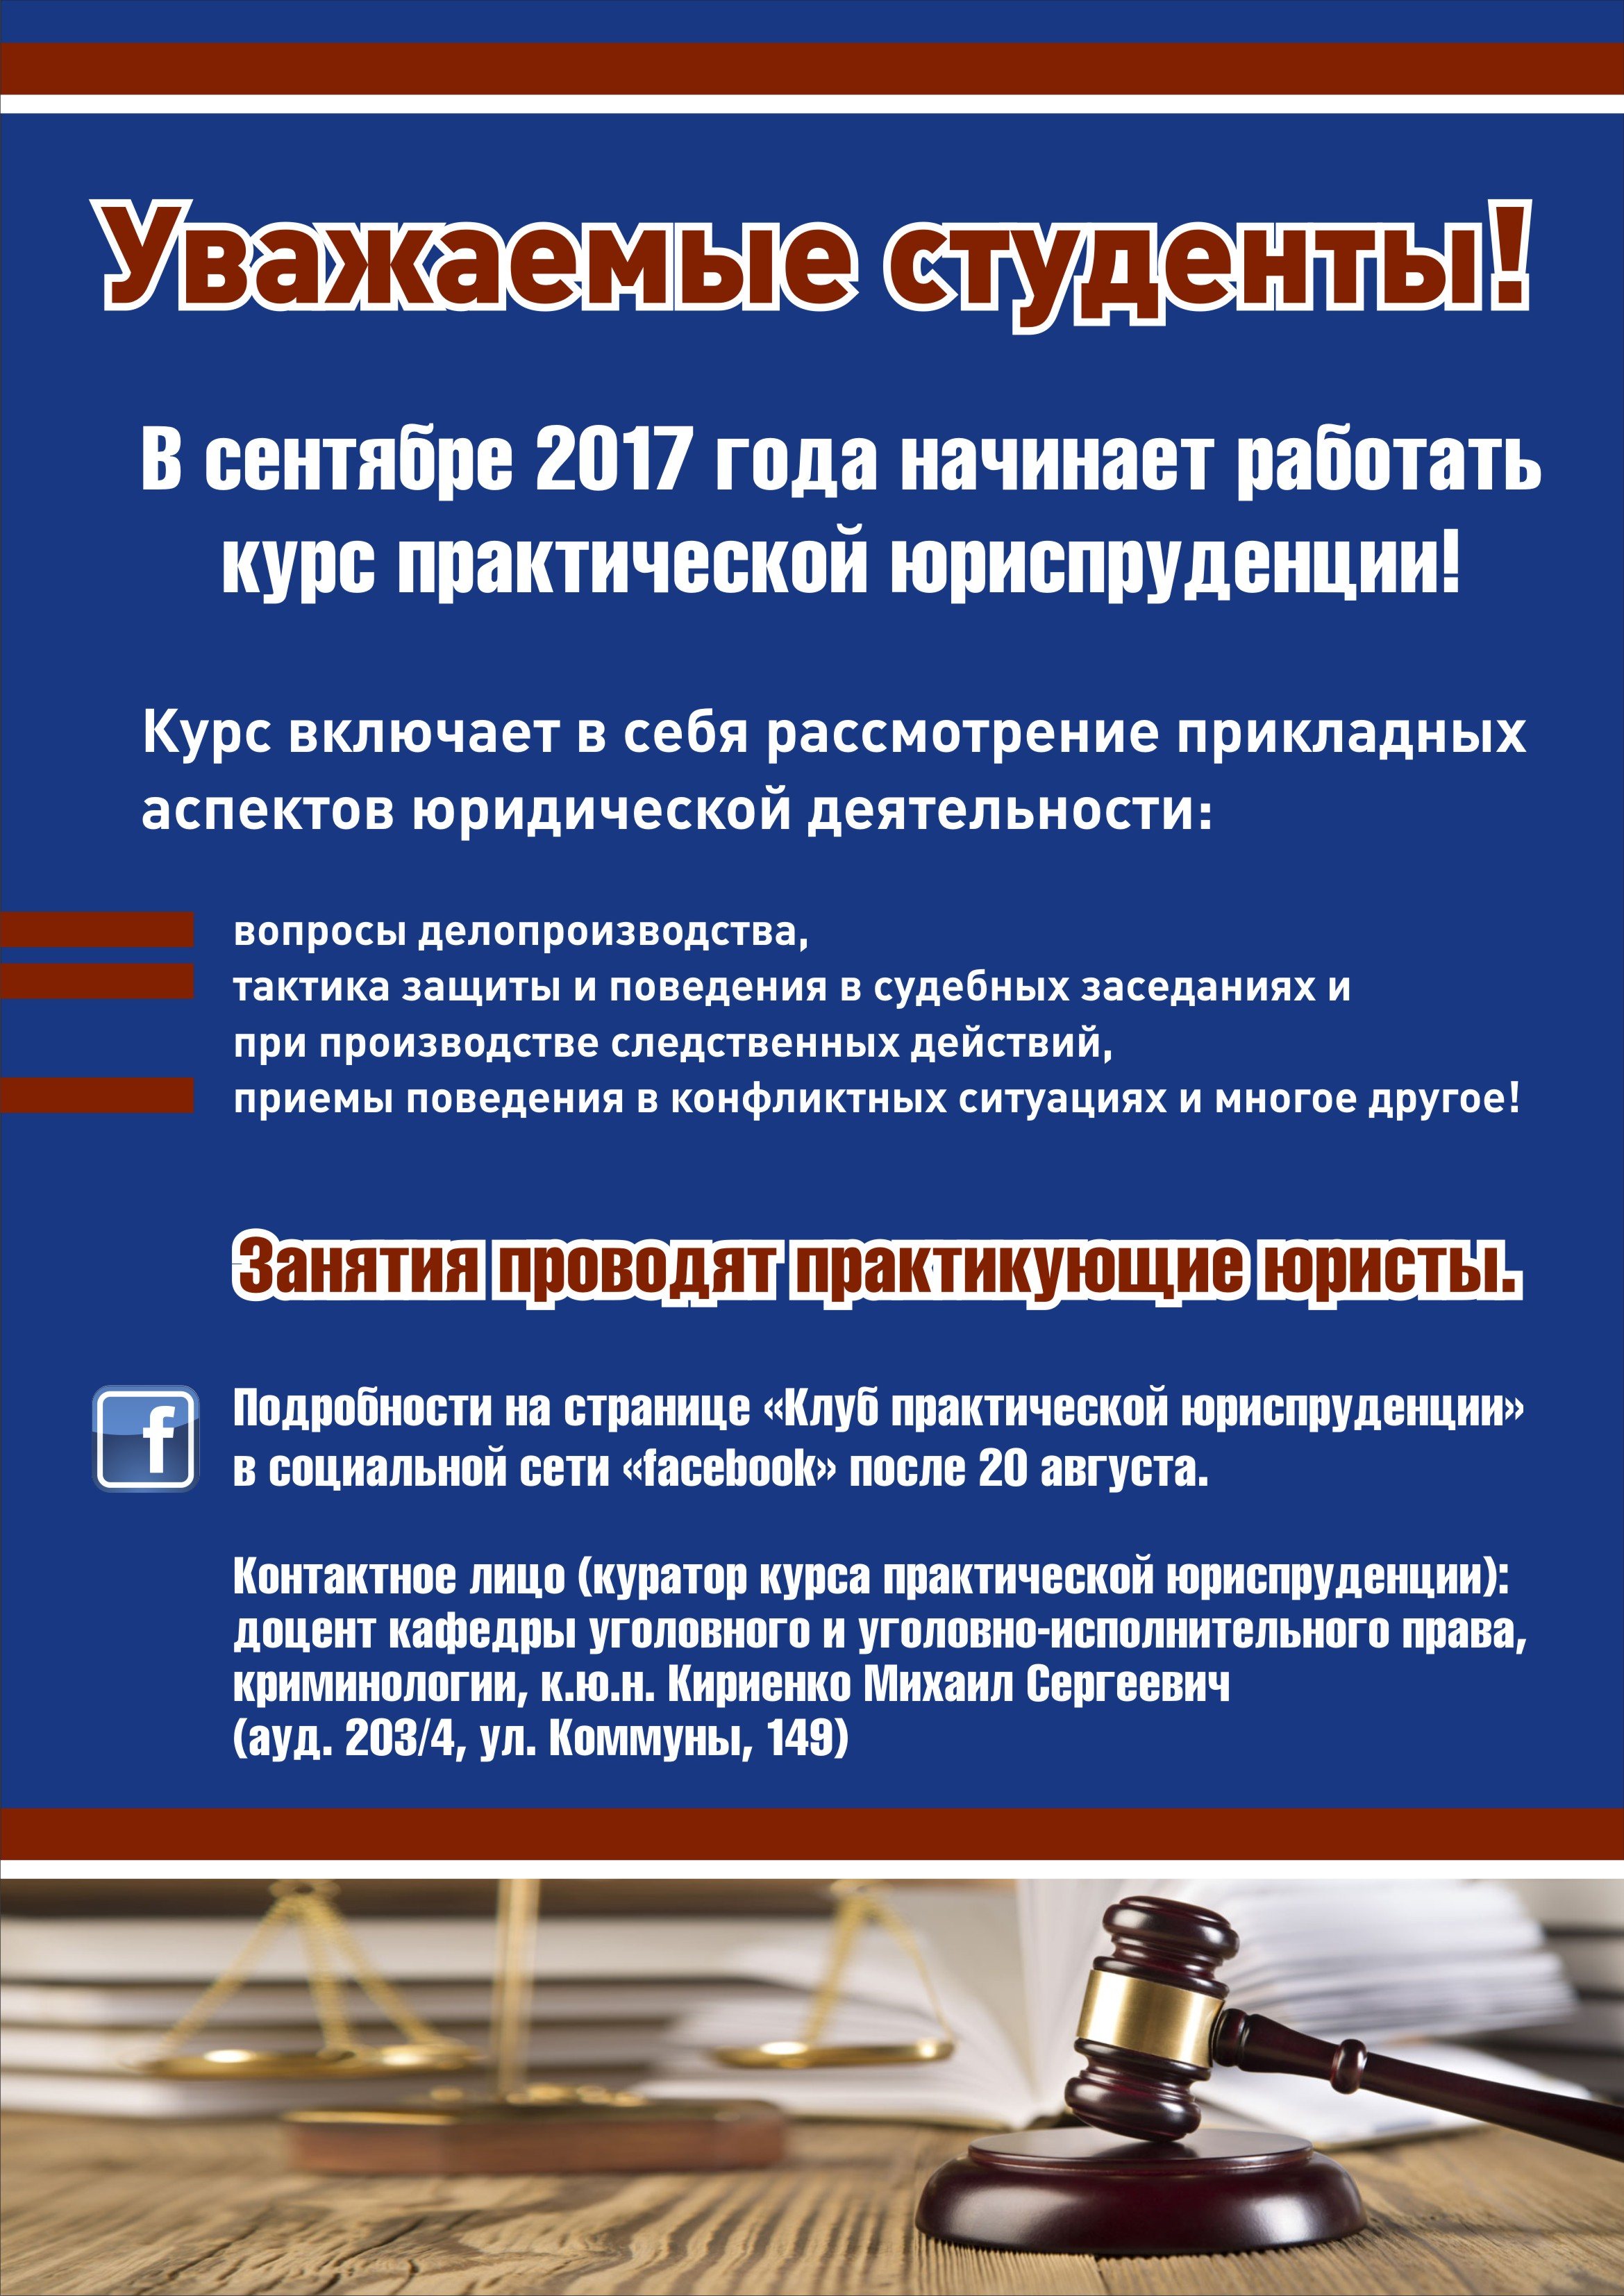 https://law.susu.ru/criminology/wp-content/uploads/sites/7/2017/08/Afisha-A3_2.jpg